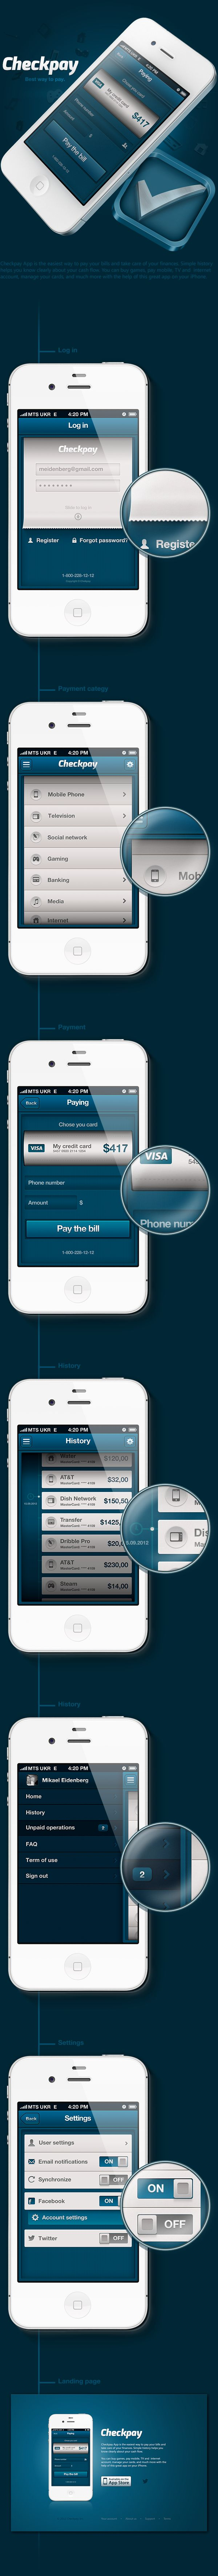 Checkpay App by BLASTAROCKS , via Behance